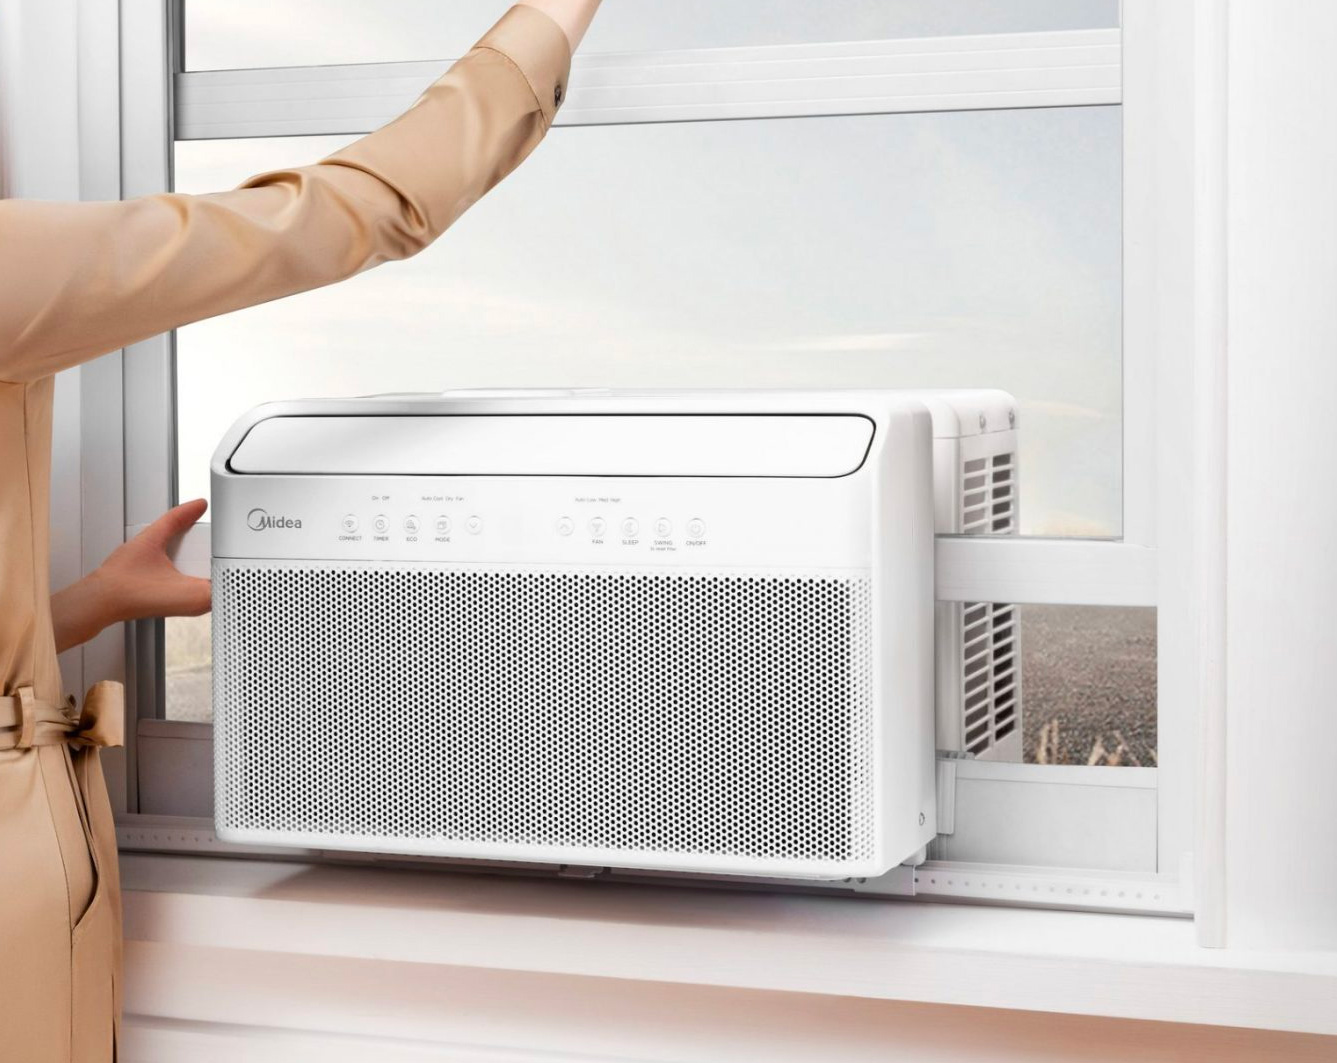 Midea's U-Shaped AC Unit is Cool & Quiet at werd.com